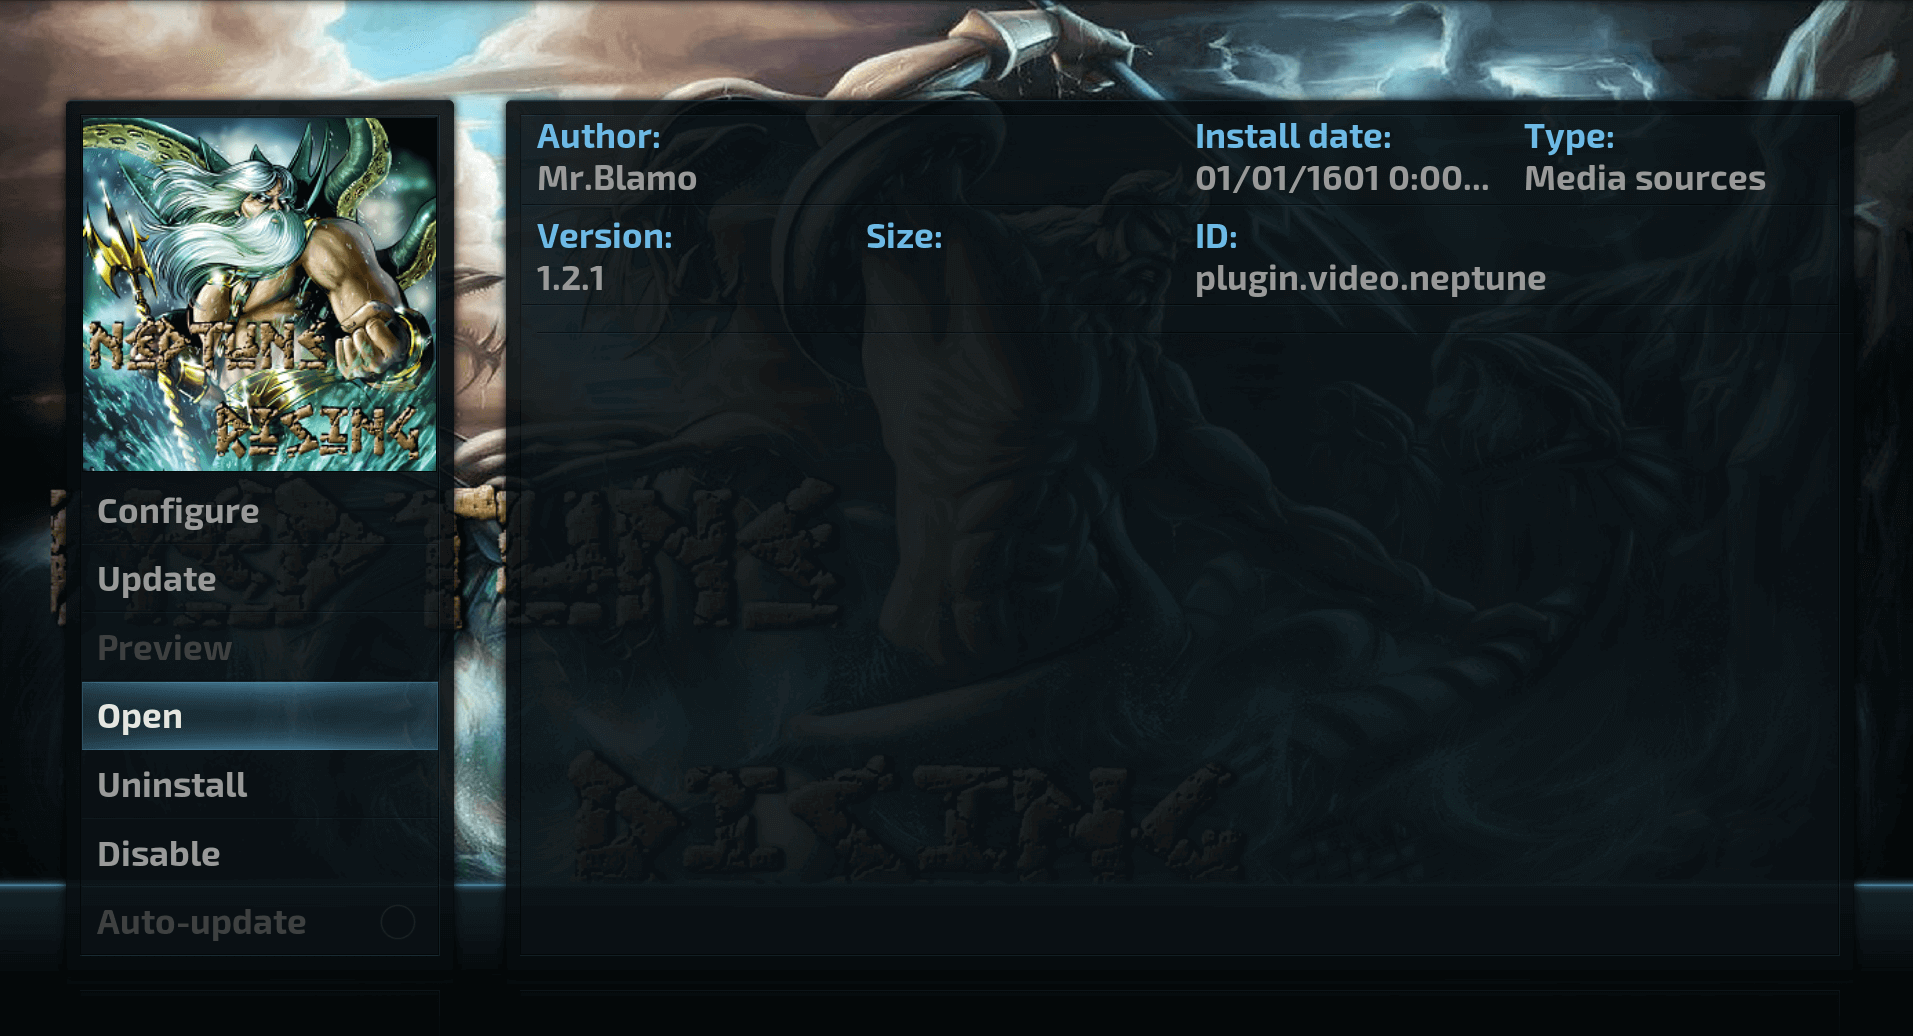 Blamo Repository Shuts Down - How to Install Neptune Rising Kodi addon